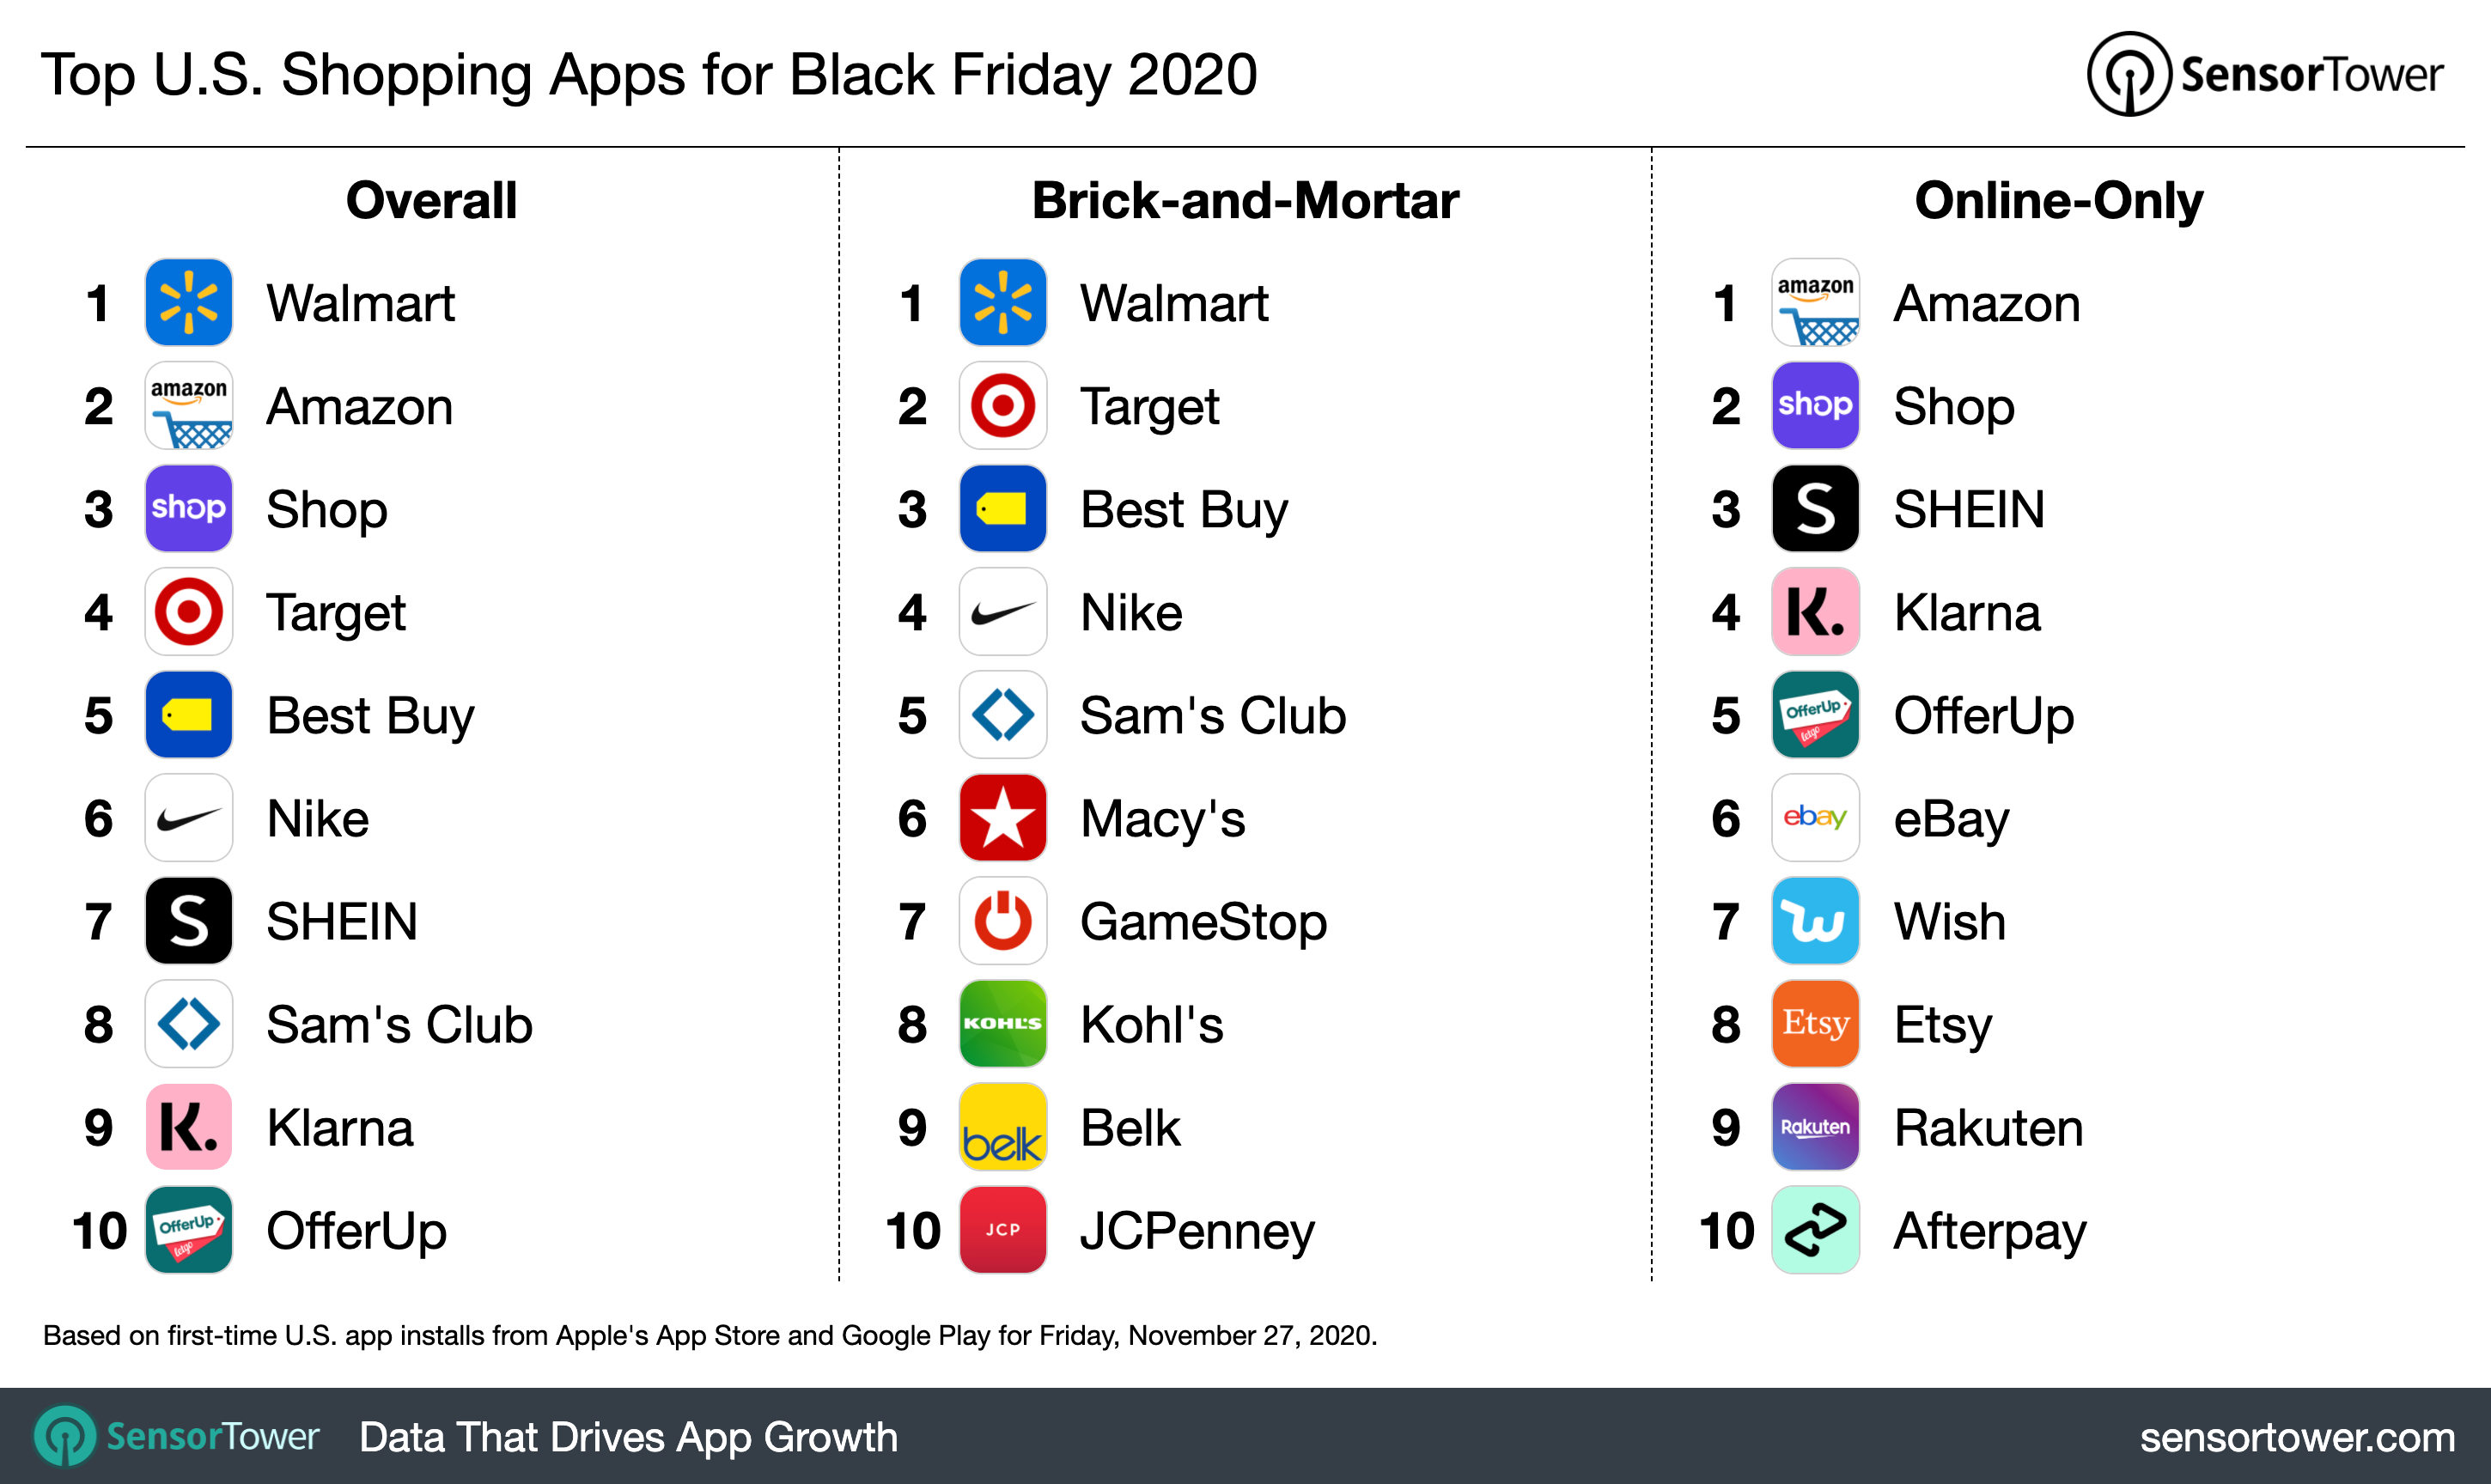 Half of the top 10 shopping apps in the U.S. were B&M this Black Friday